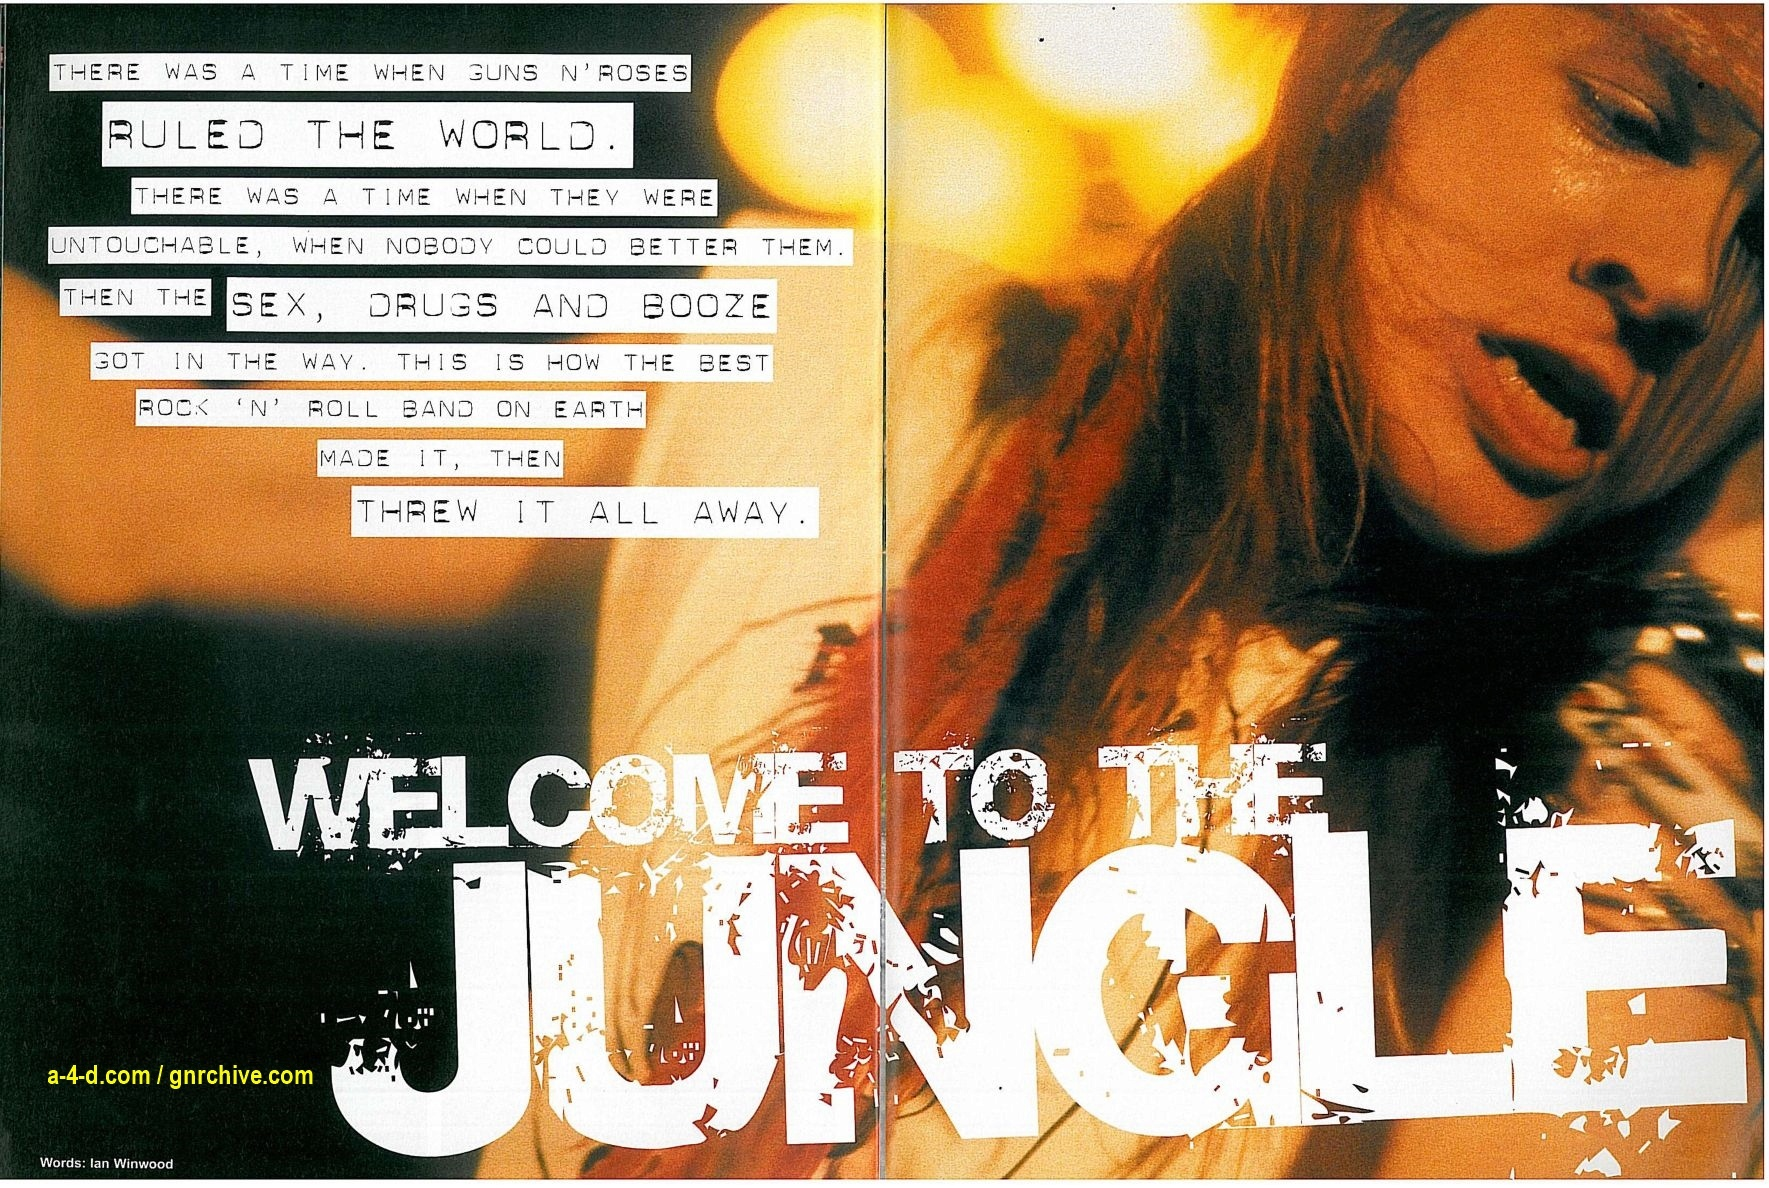 2004.03.20 - Kerrang! - Welcome To The Jungle 2004-046